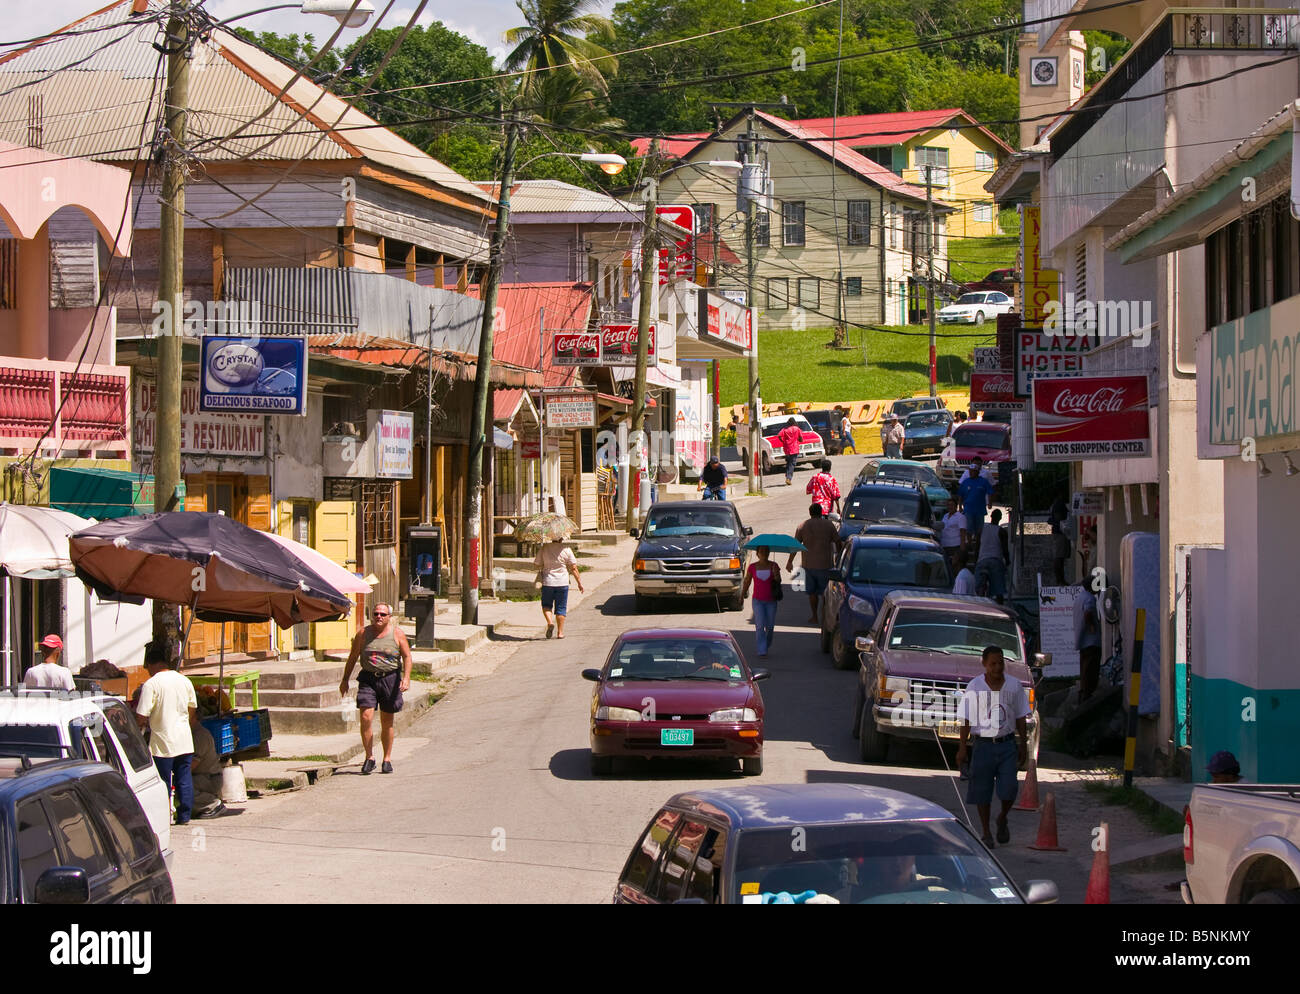 SAN IGNACIO BELIZE Bustling street scene on Burns Avenue - Stock Image